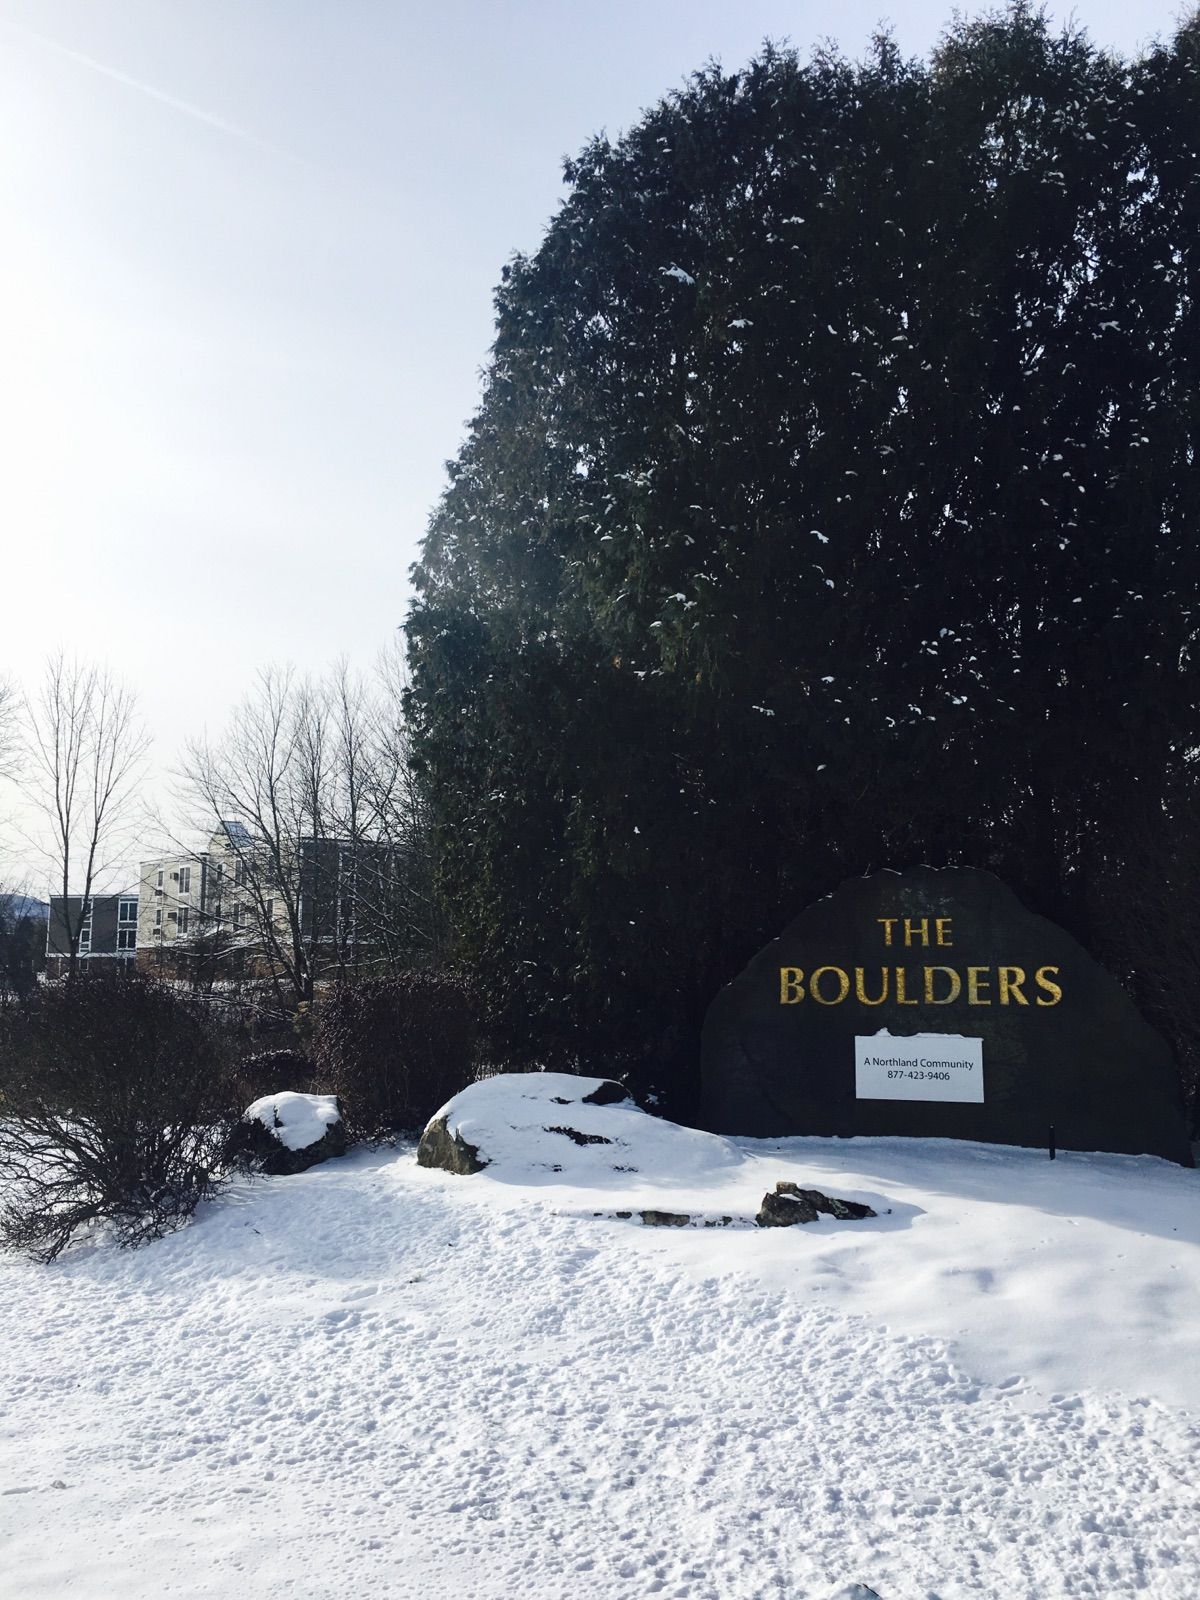 We love the winter season at The Boulders in Amherst ...